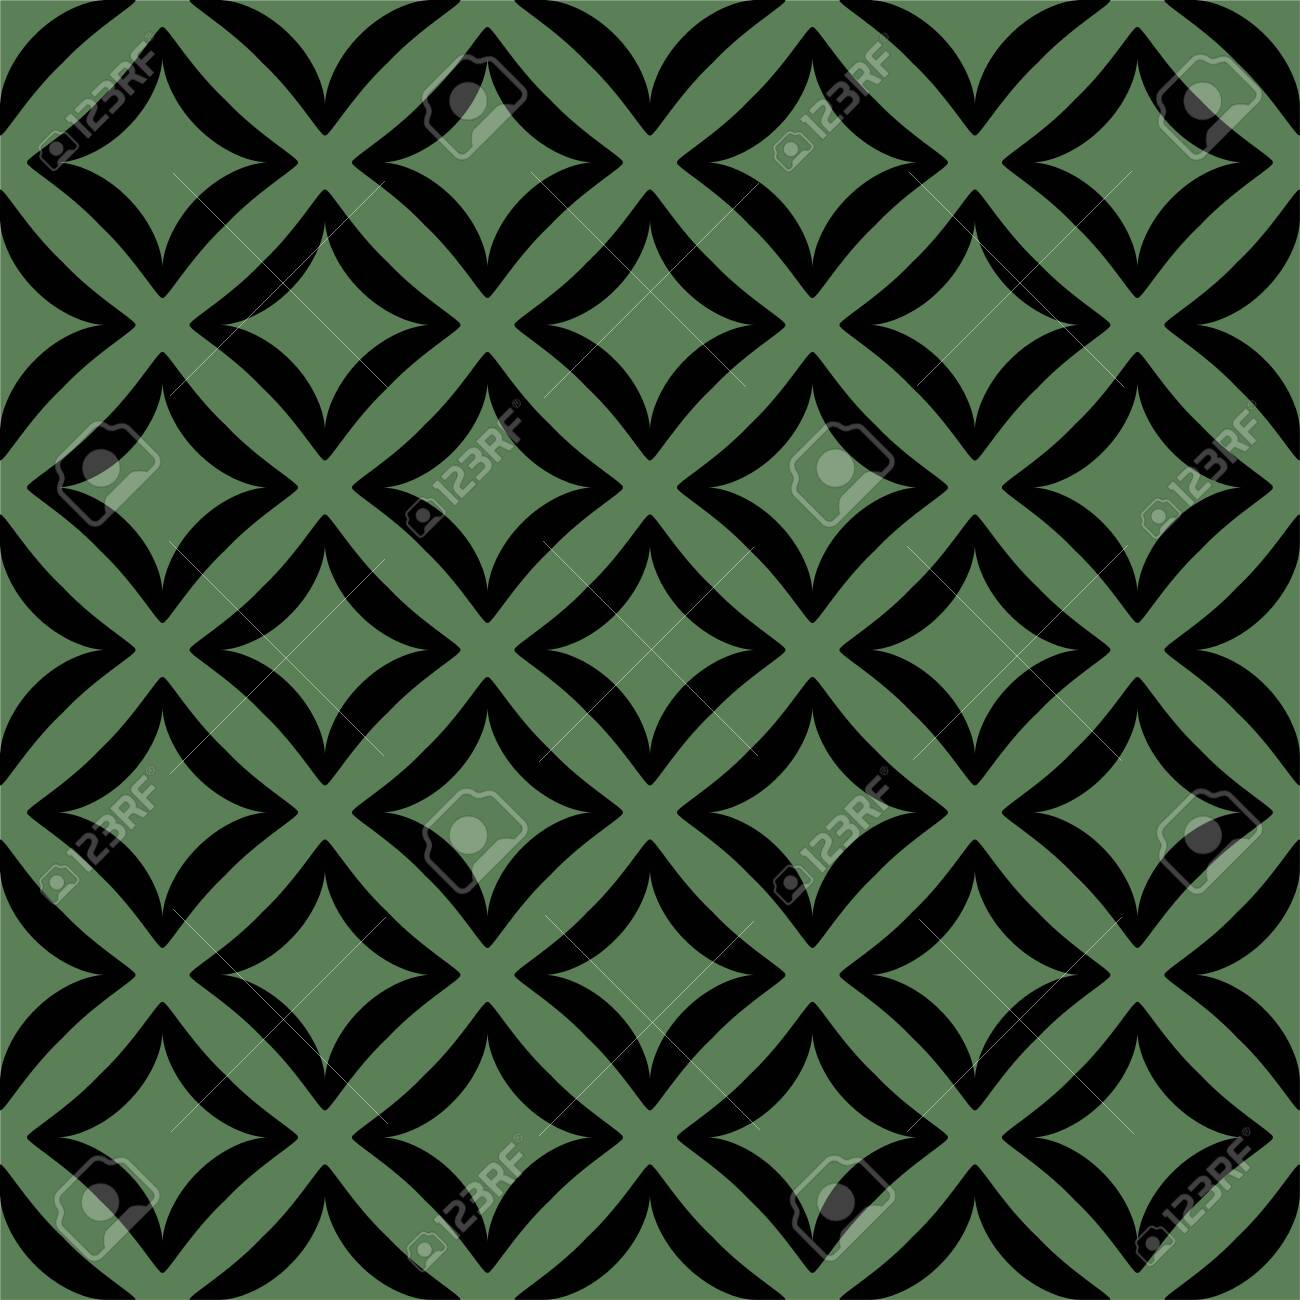 Black pattern on green seamless vector background. - 150328820